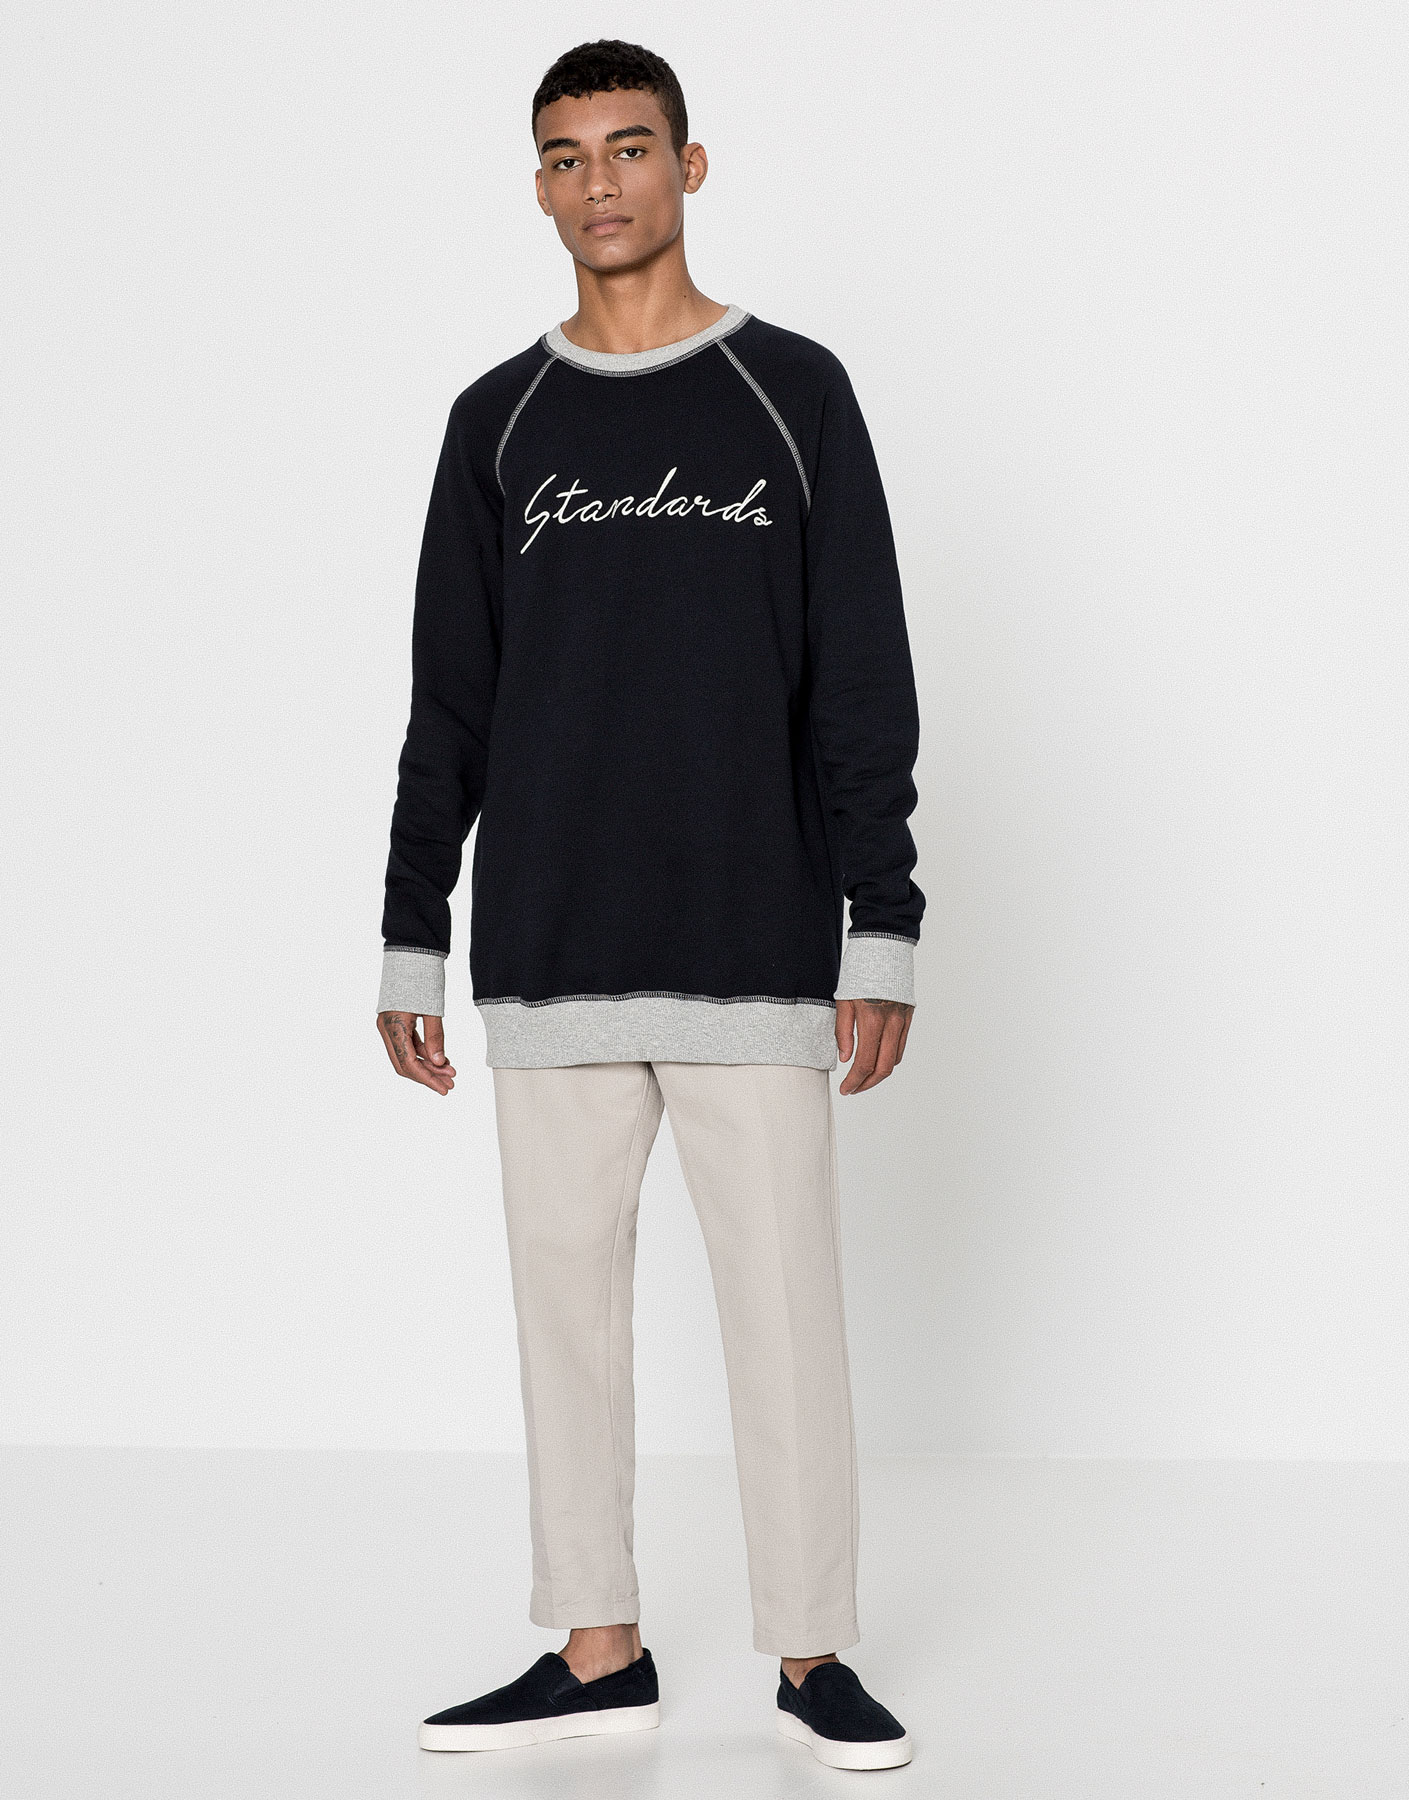 Standards embroidered sweatshirt